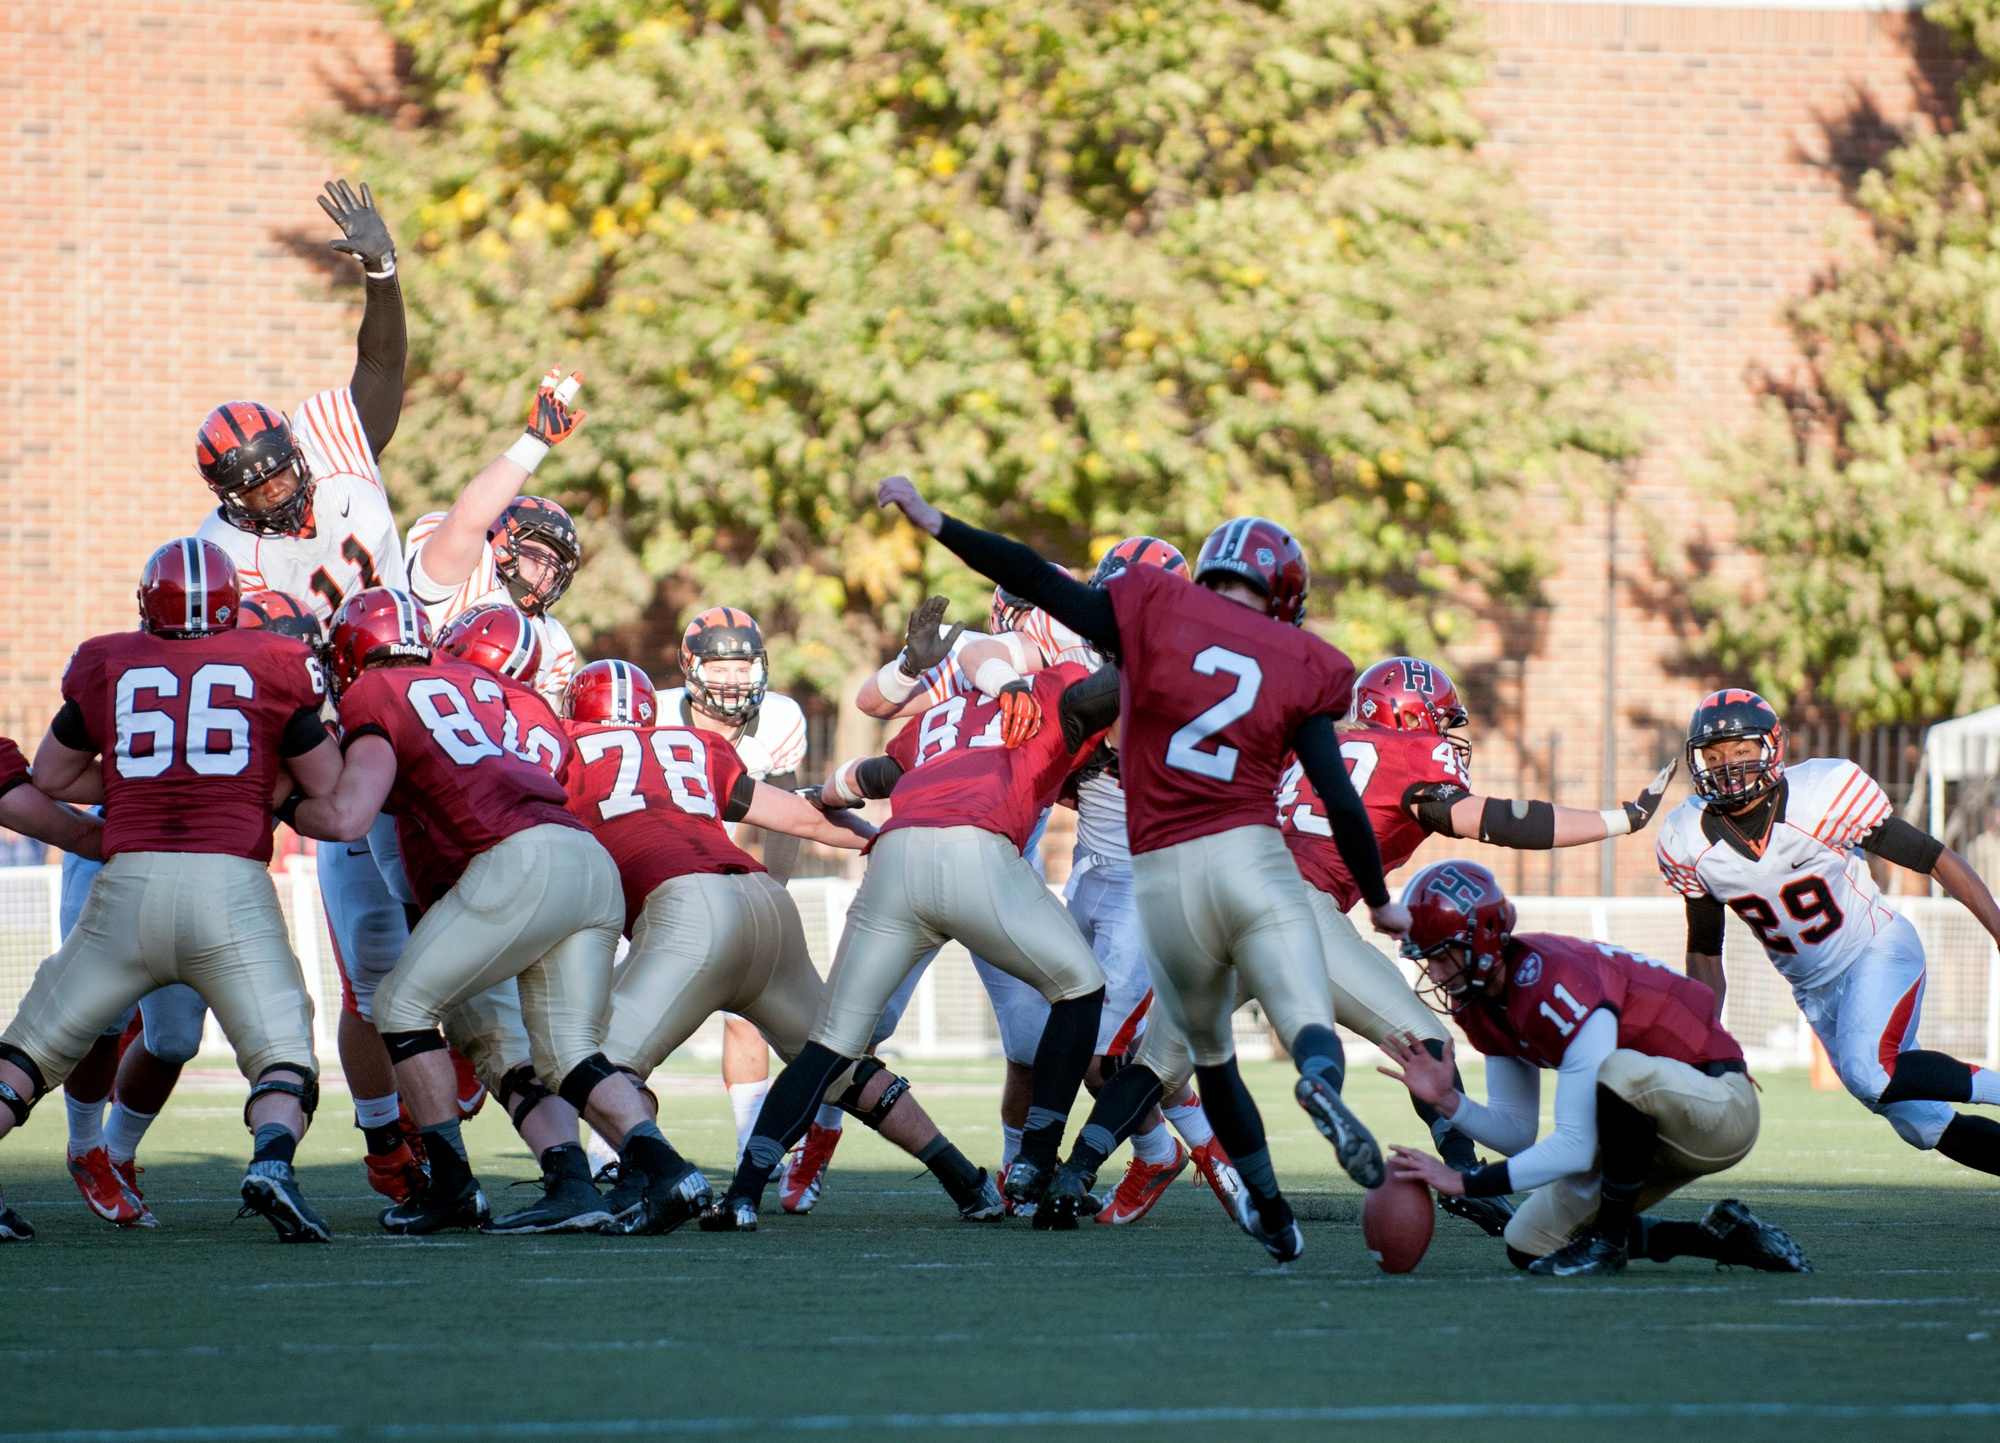 Tyler Ott '14, wearing number 82, blocks the Princeton defensive line with the rest of the Crimson kicking unit after delivering the snap to kicker Andrew Flesher '15 in a 2013 contest at Harvard Stadium.